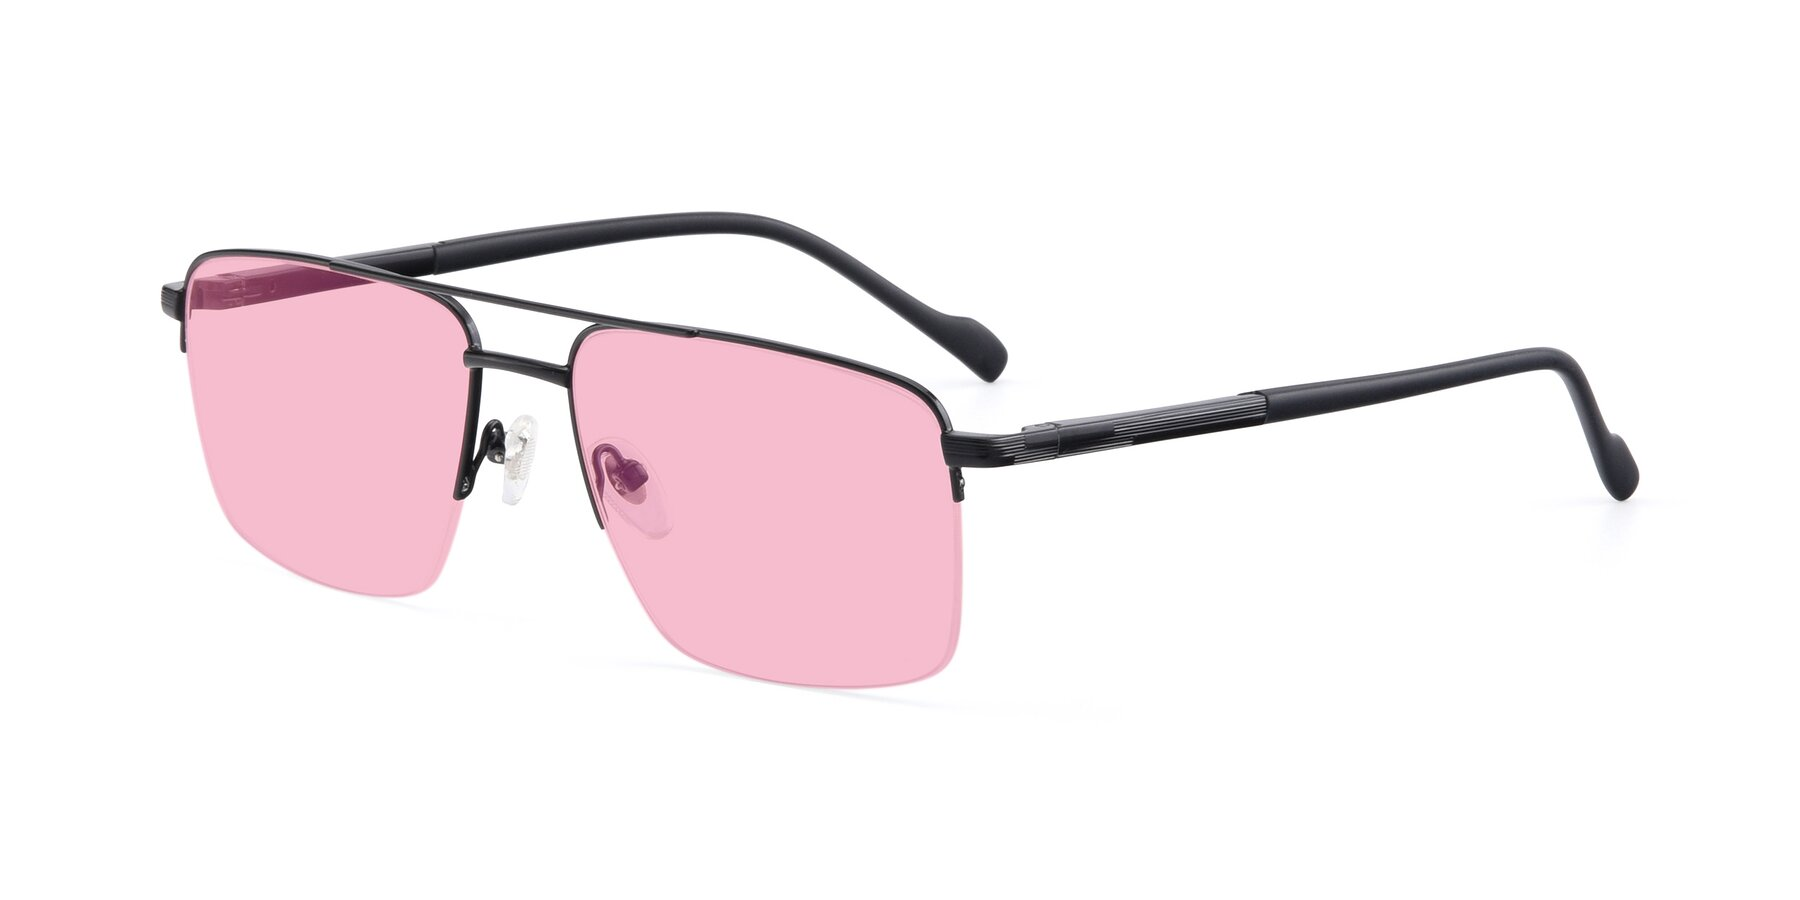 Angle of 19013 in Black with Medium Pink Tinted Lenses